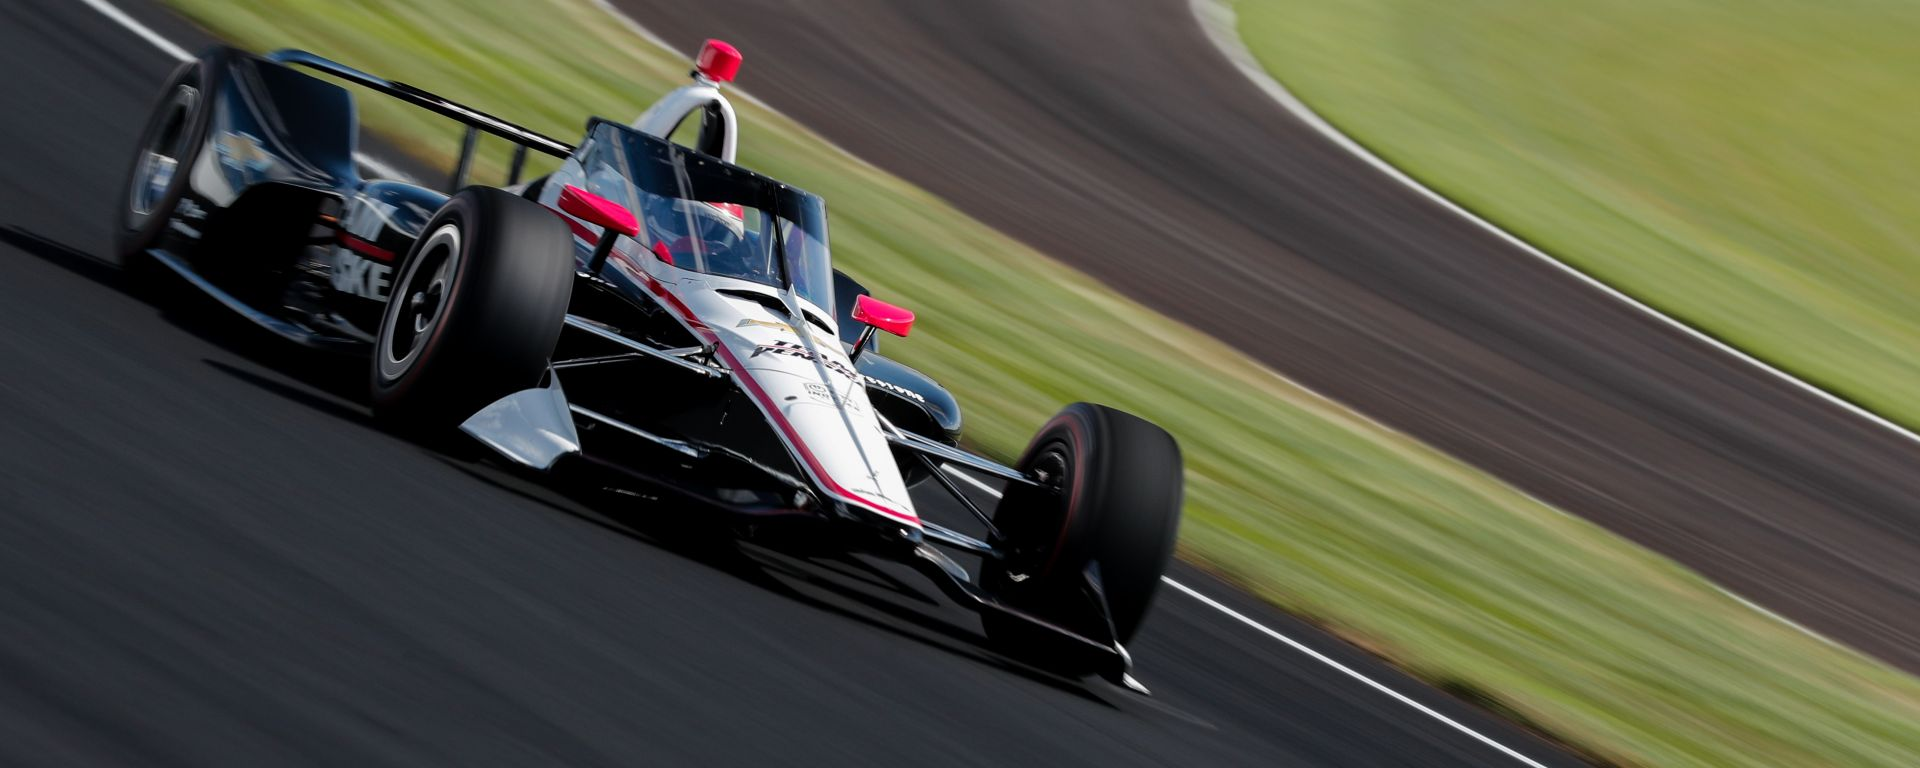 IndyCar 2019, Indianapolis: Will Power testa in pista l'Aeroscreen